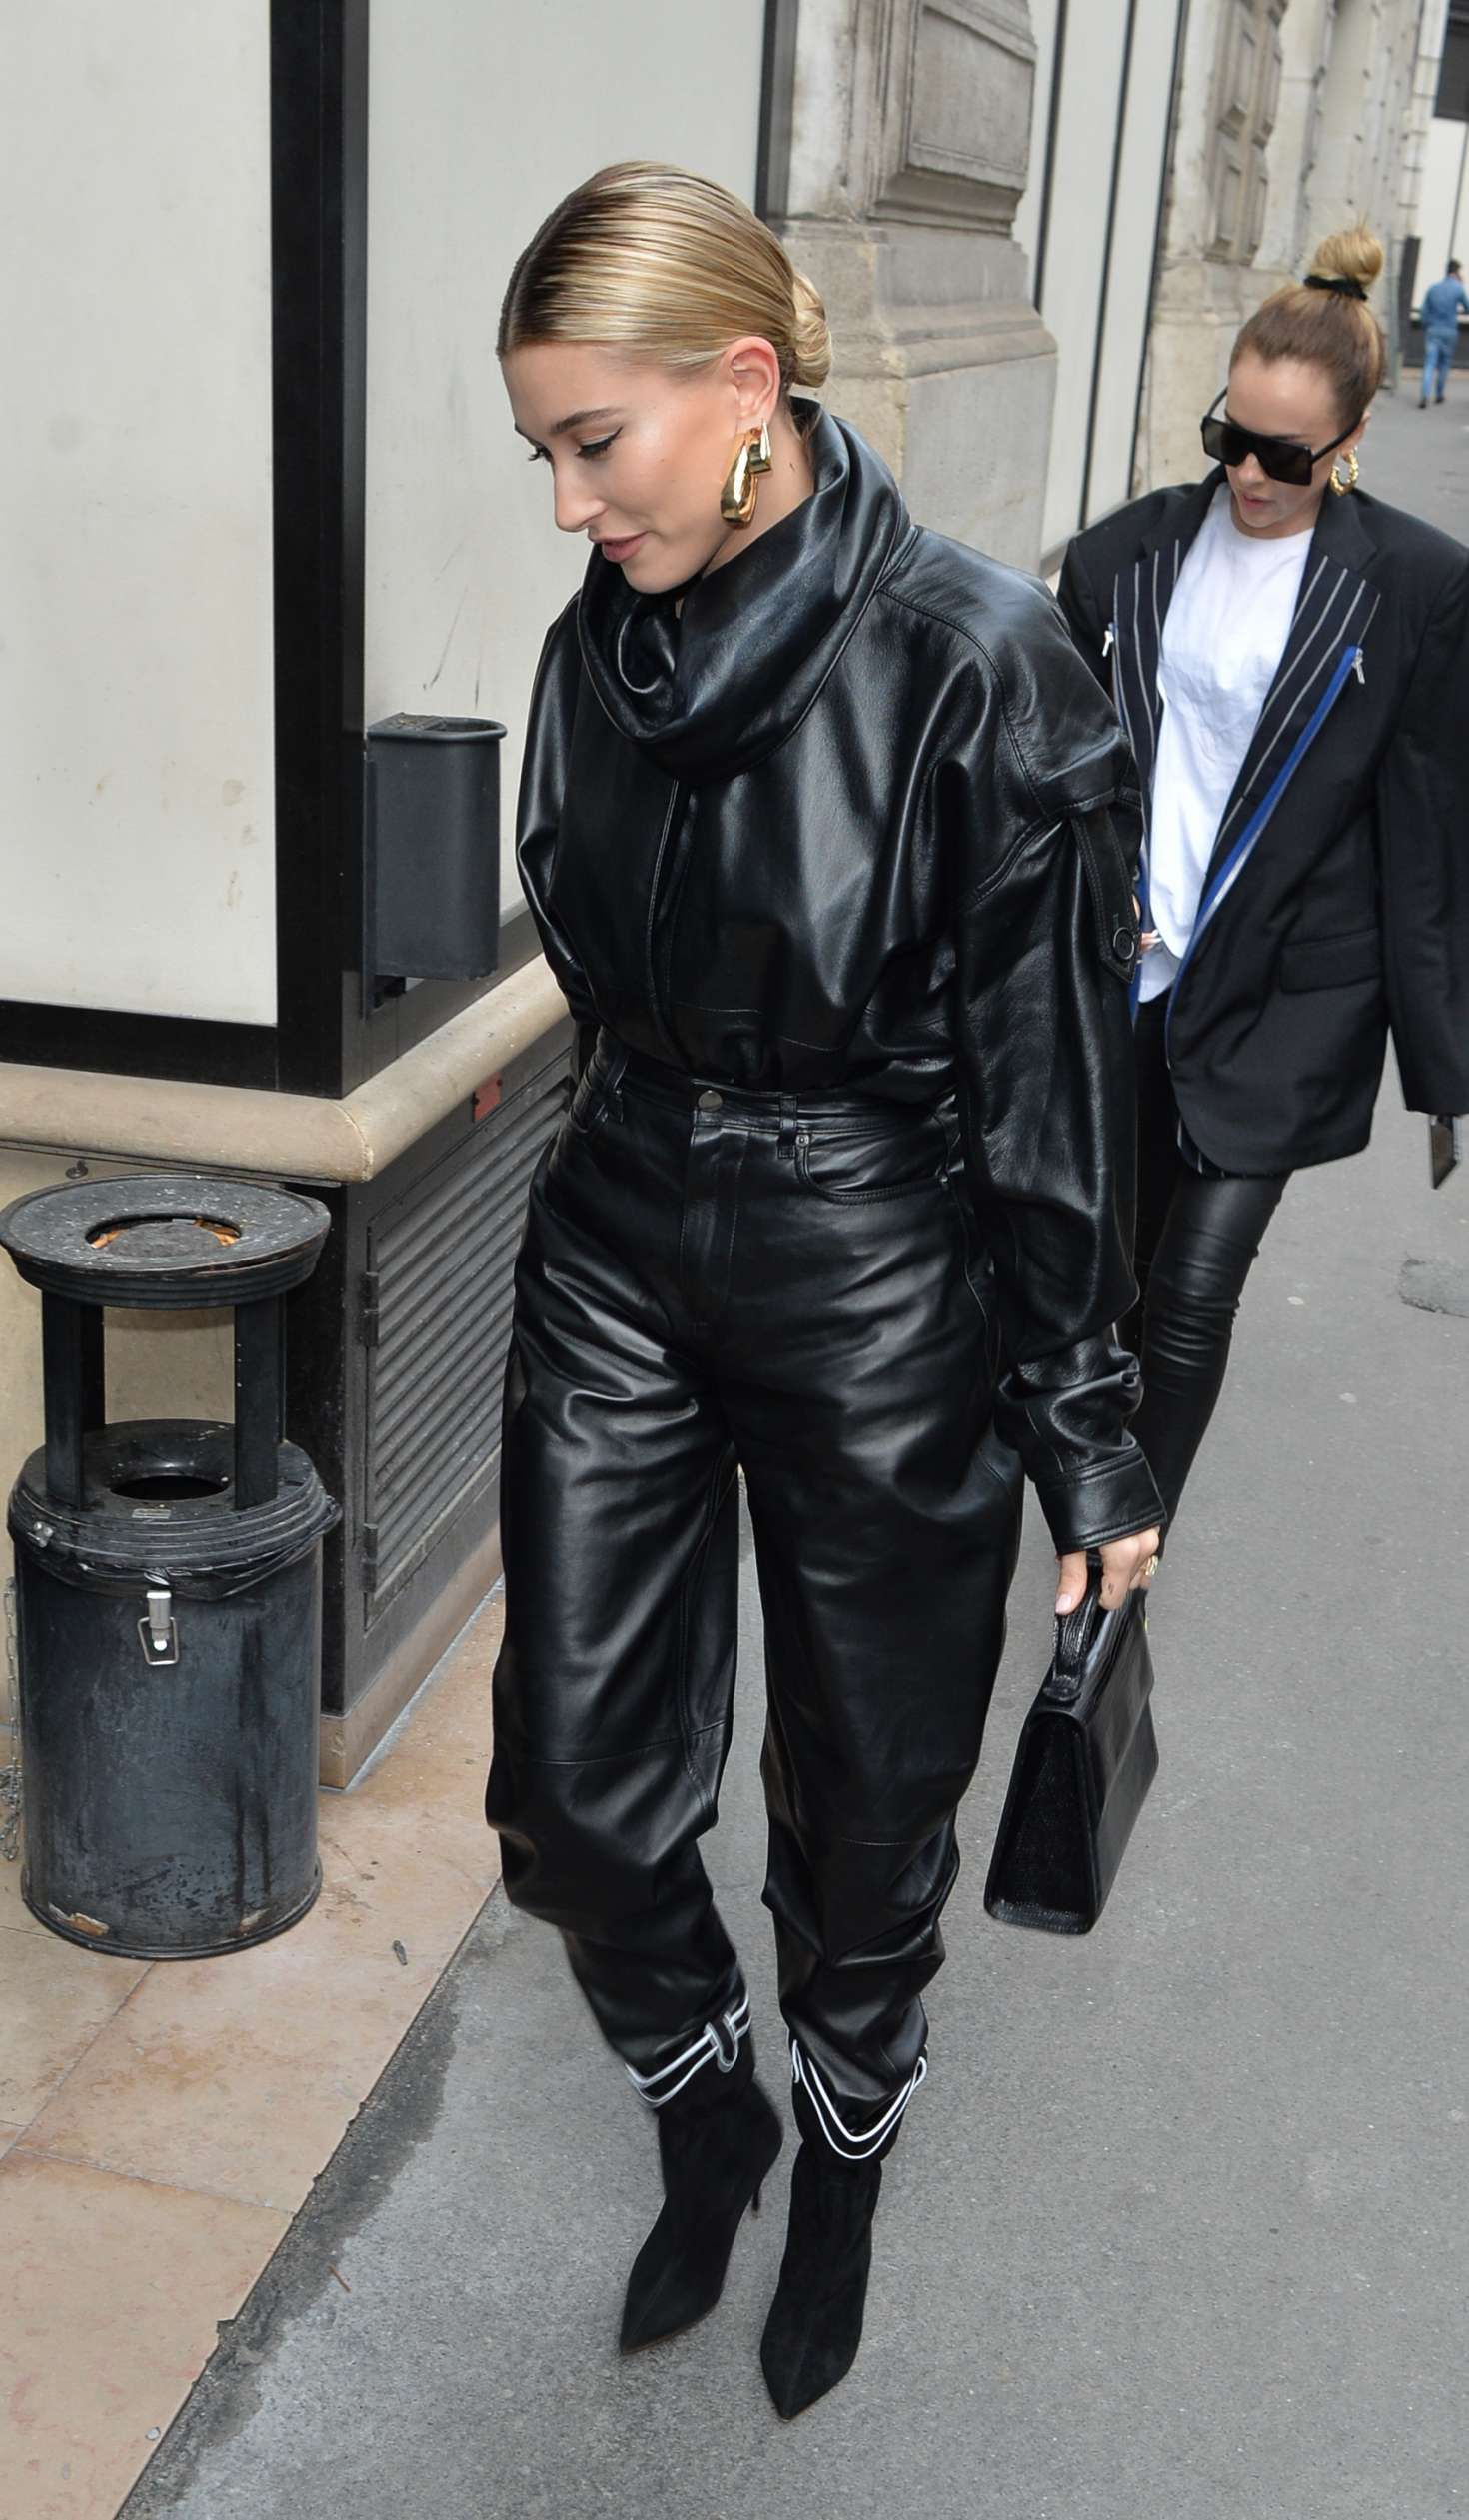 Photo 04: Hailey Baldwin in black leather jacket and pants